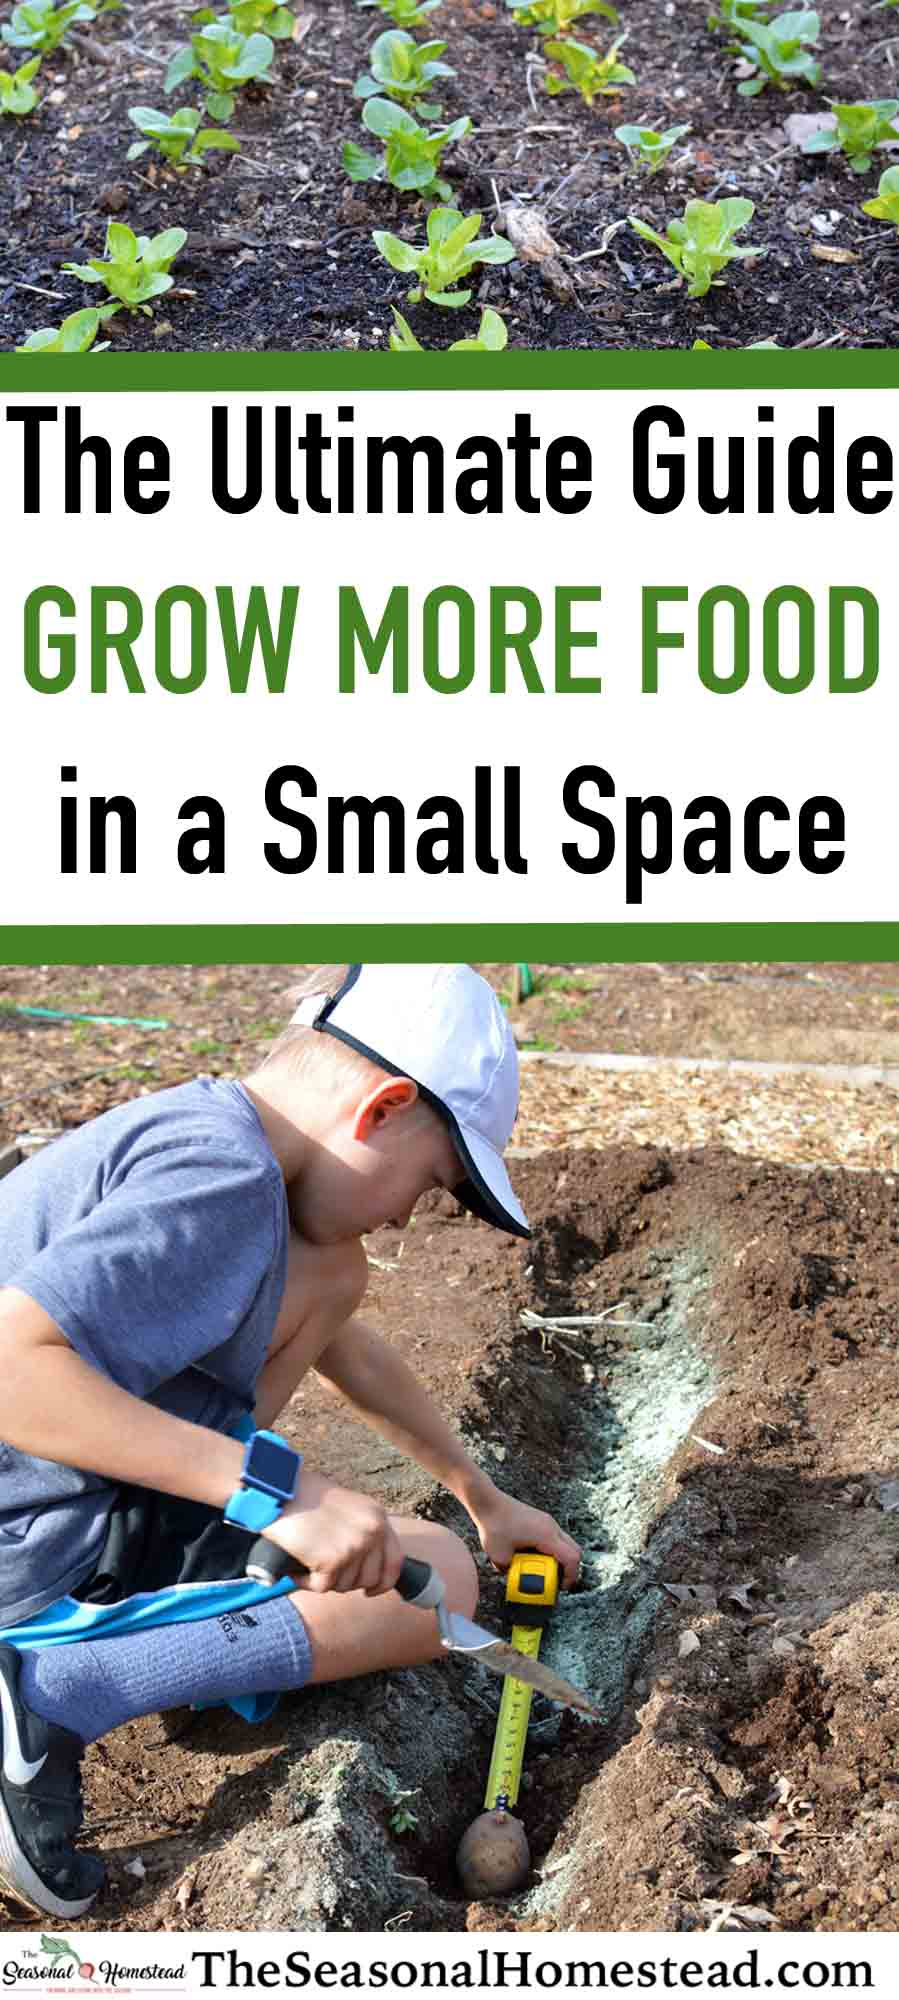 The Ultimate Guide To Growing More Food in a Small Space.jpg